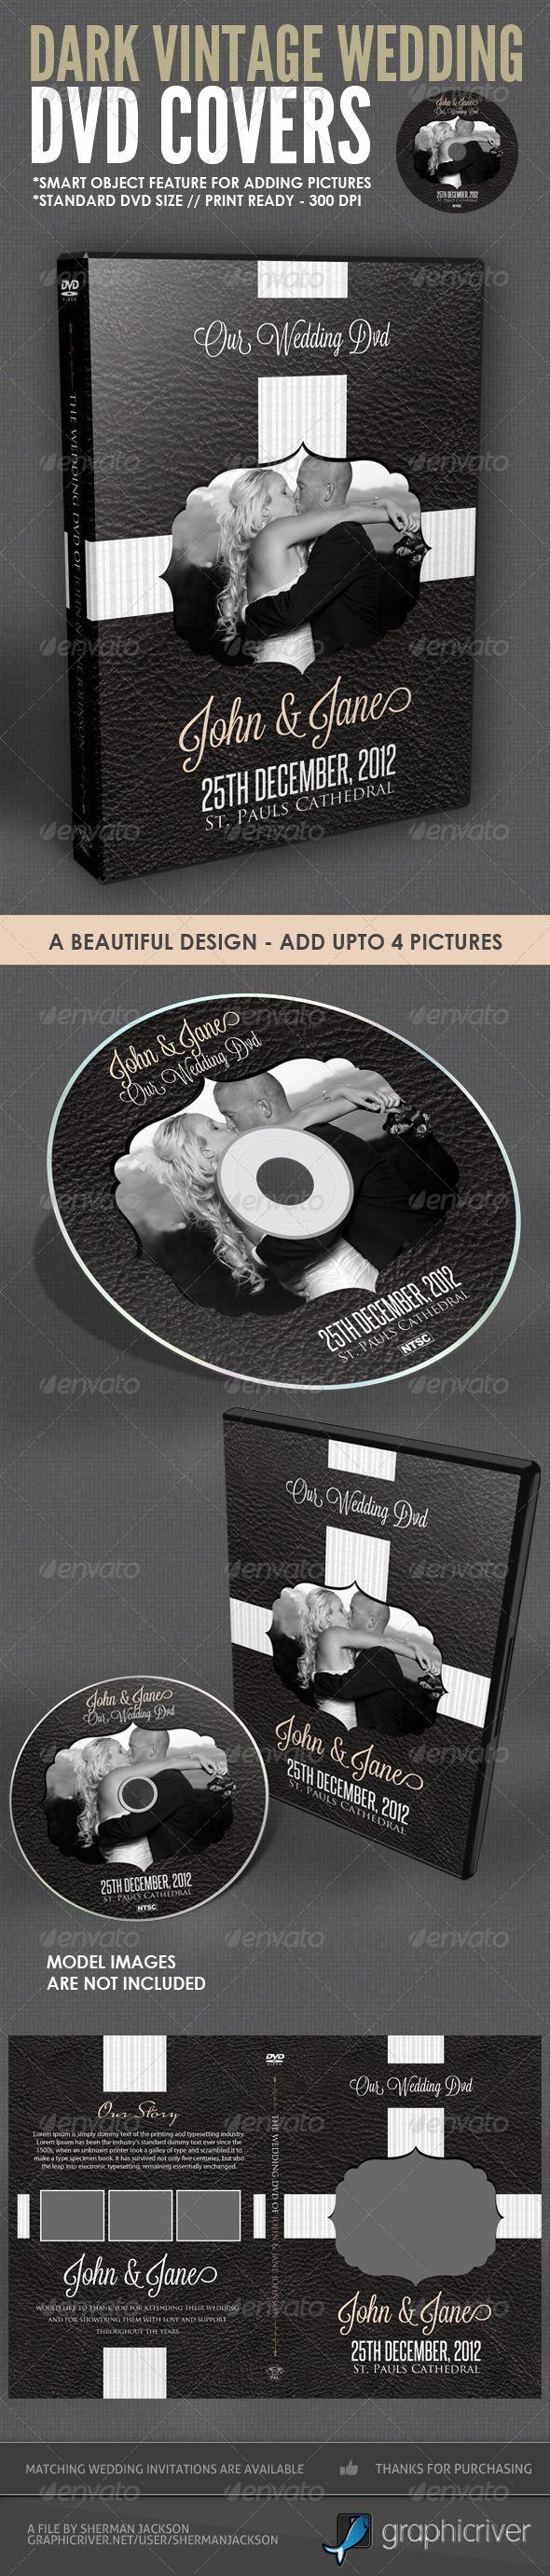 Dark Vintage #Wedding DVD #Cover #Template - #CD & #DVD #Artwork Print Templates Download here: https://graphicriver.net/item/dark-vintage-wedding-dvd-cover-template/2243486?ref=alena994